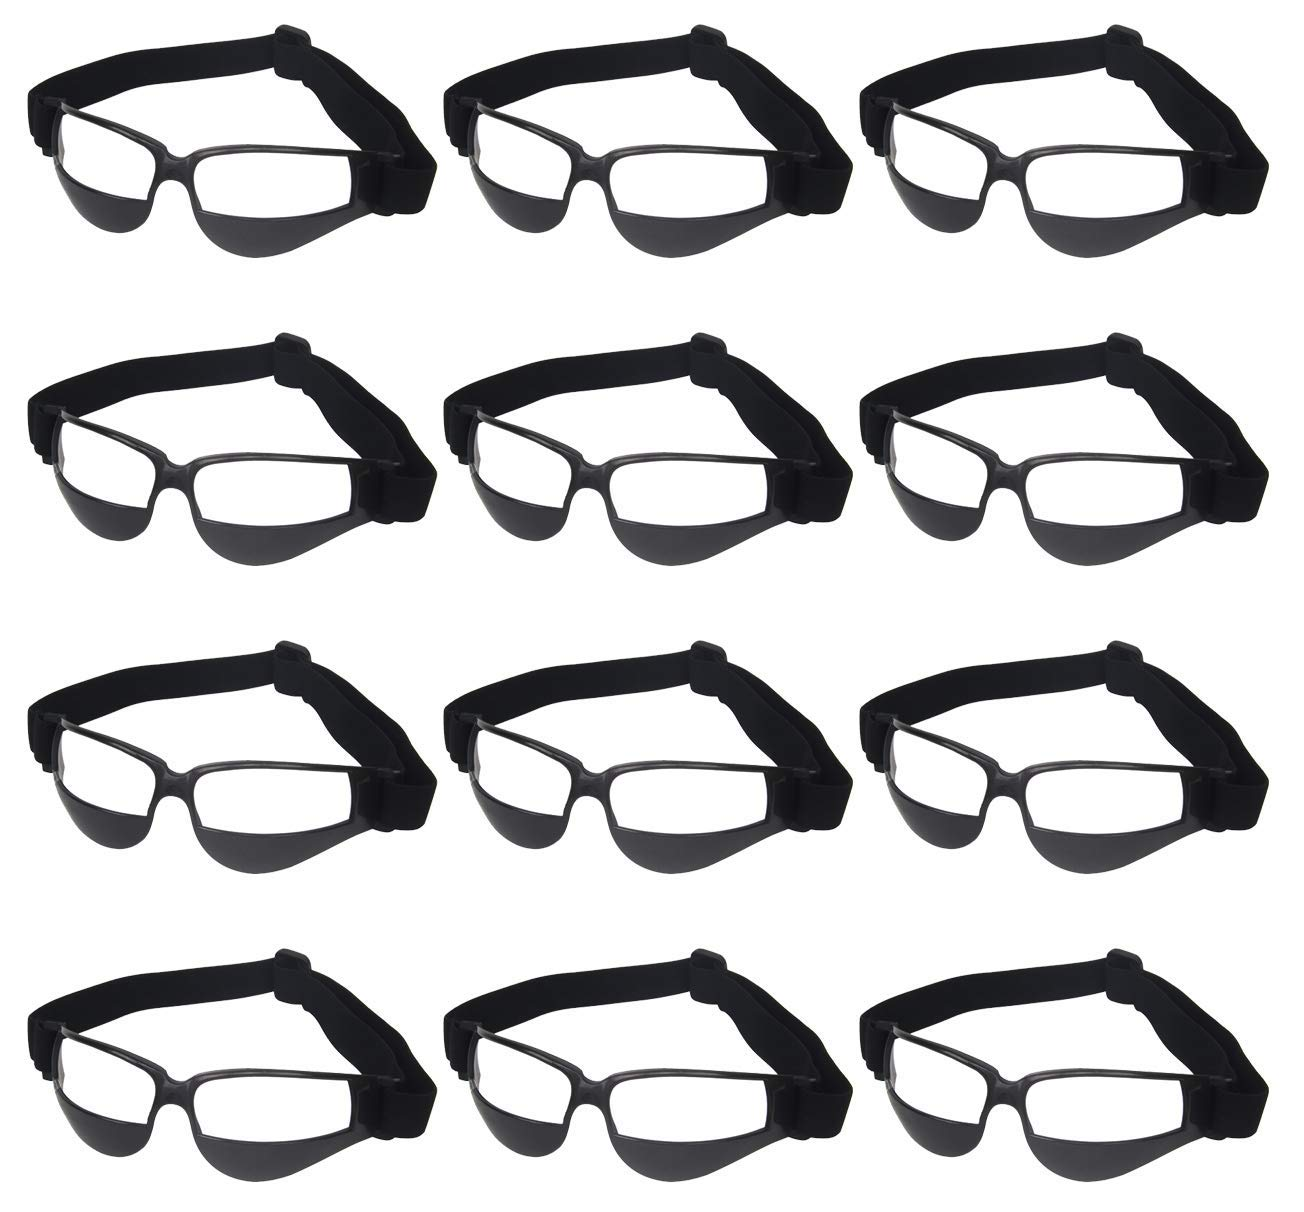 e15e911ed5a0 Heads Up Basketball Dribble Dribbling Specs Goggles Glasses Training AID